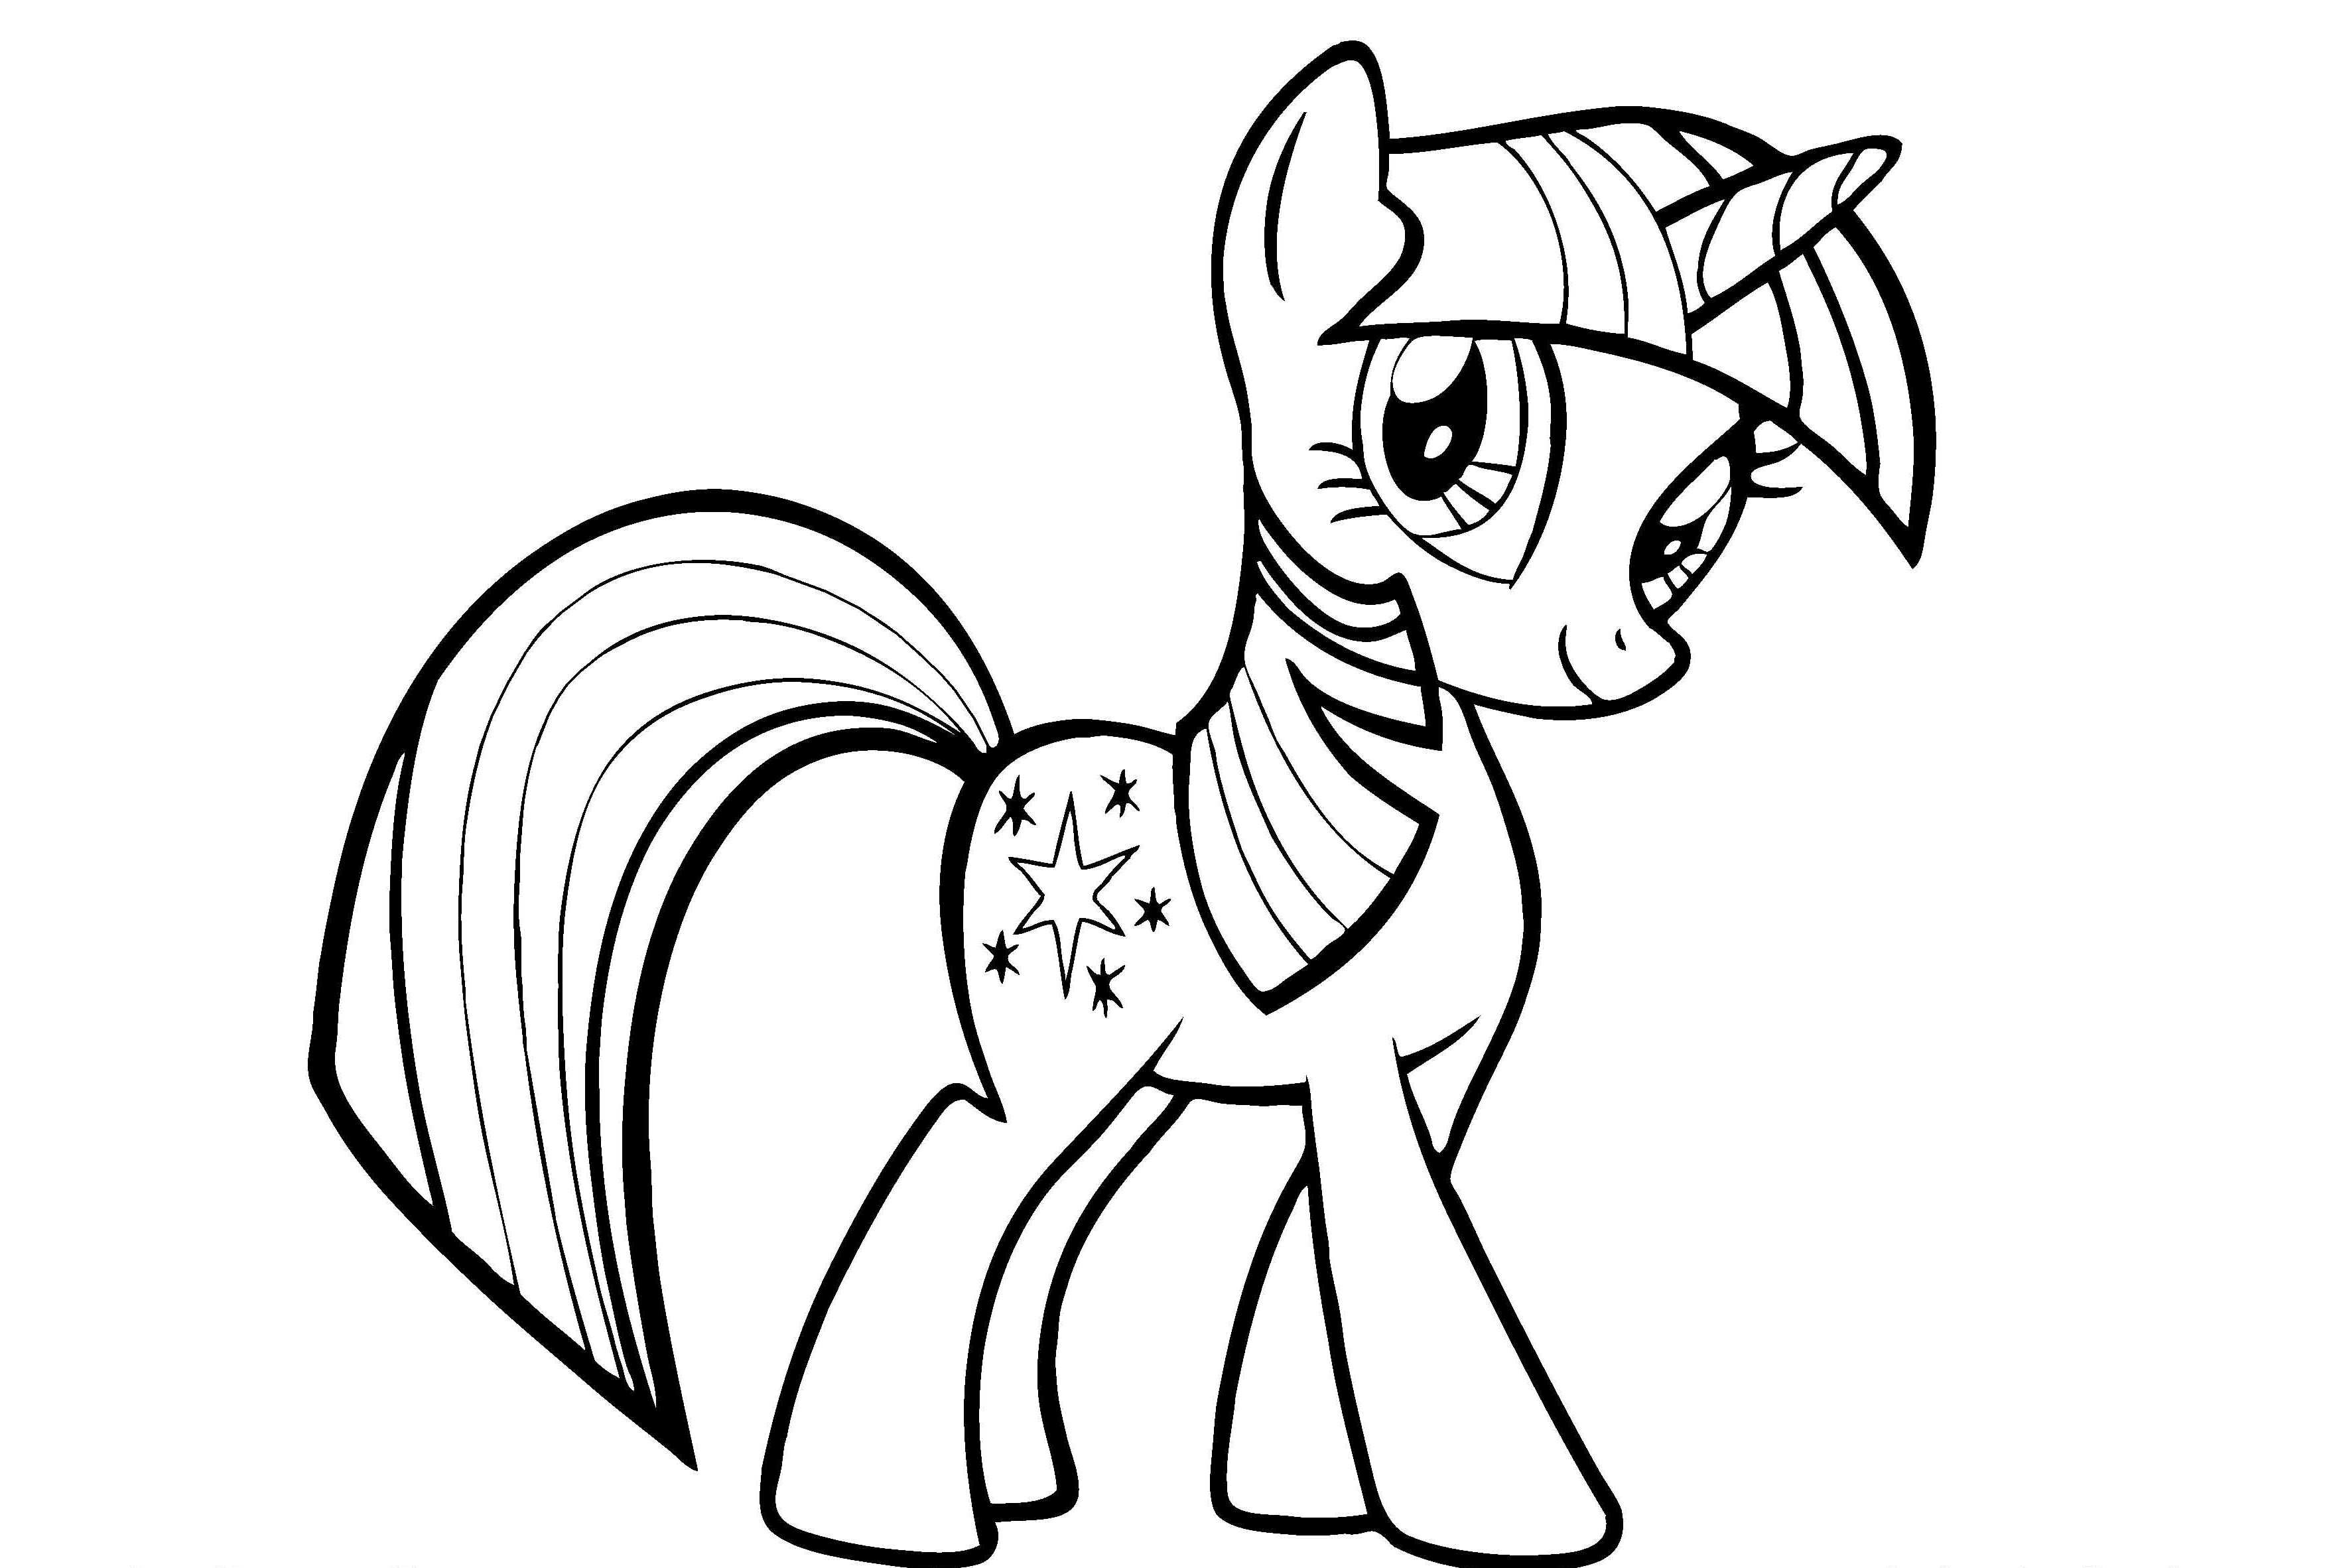 mlp color pages zombie my little pony free coloring pages color mlp pages